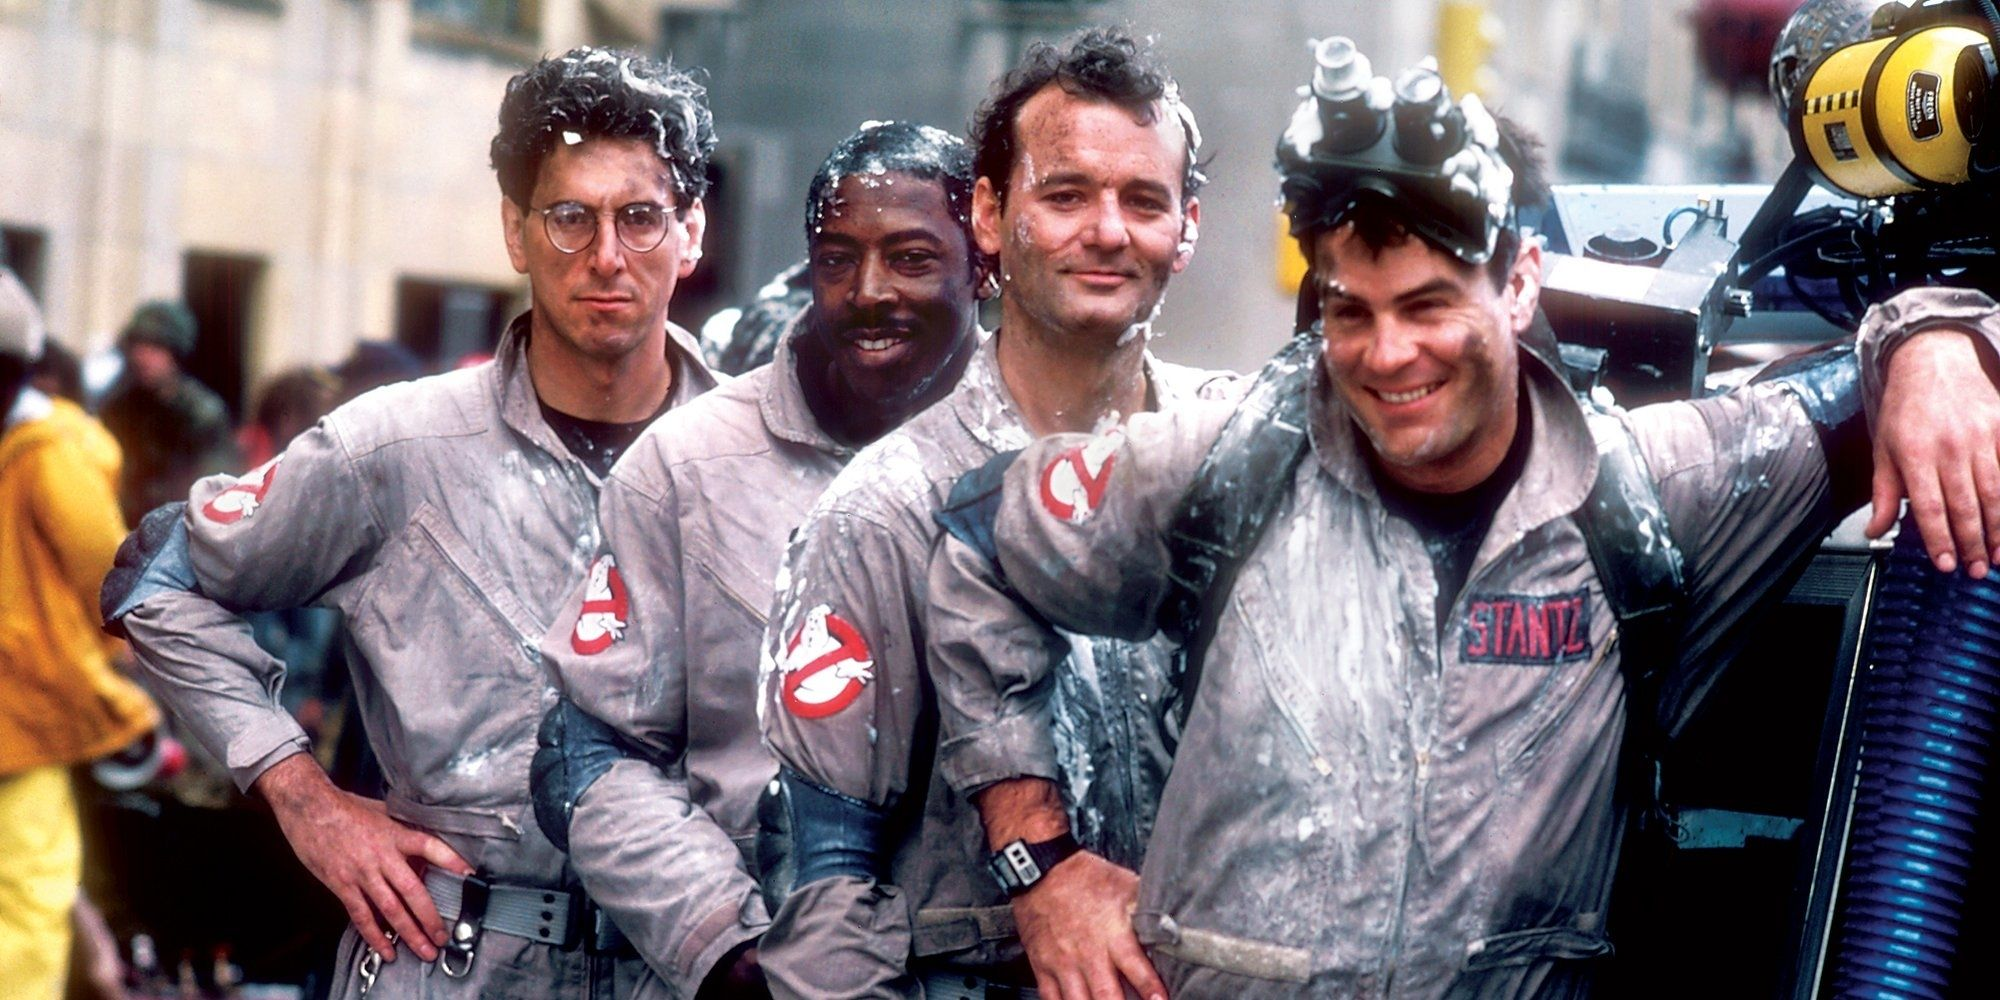 Original Ghostbuster Ernie Hudson Doesn't Have a Deal For Sequel (Yet)